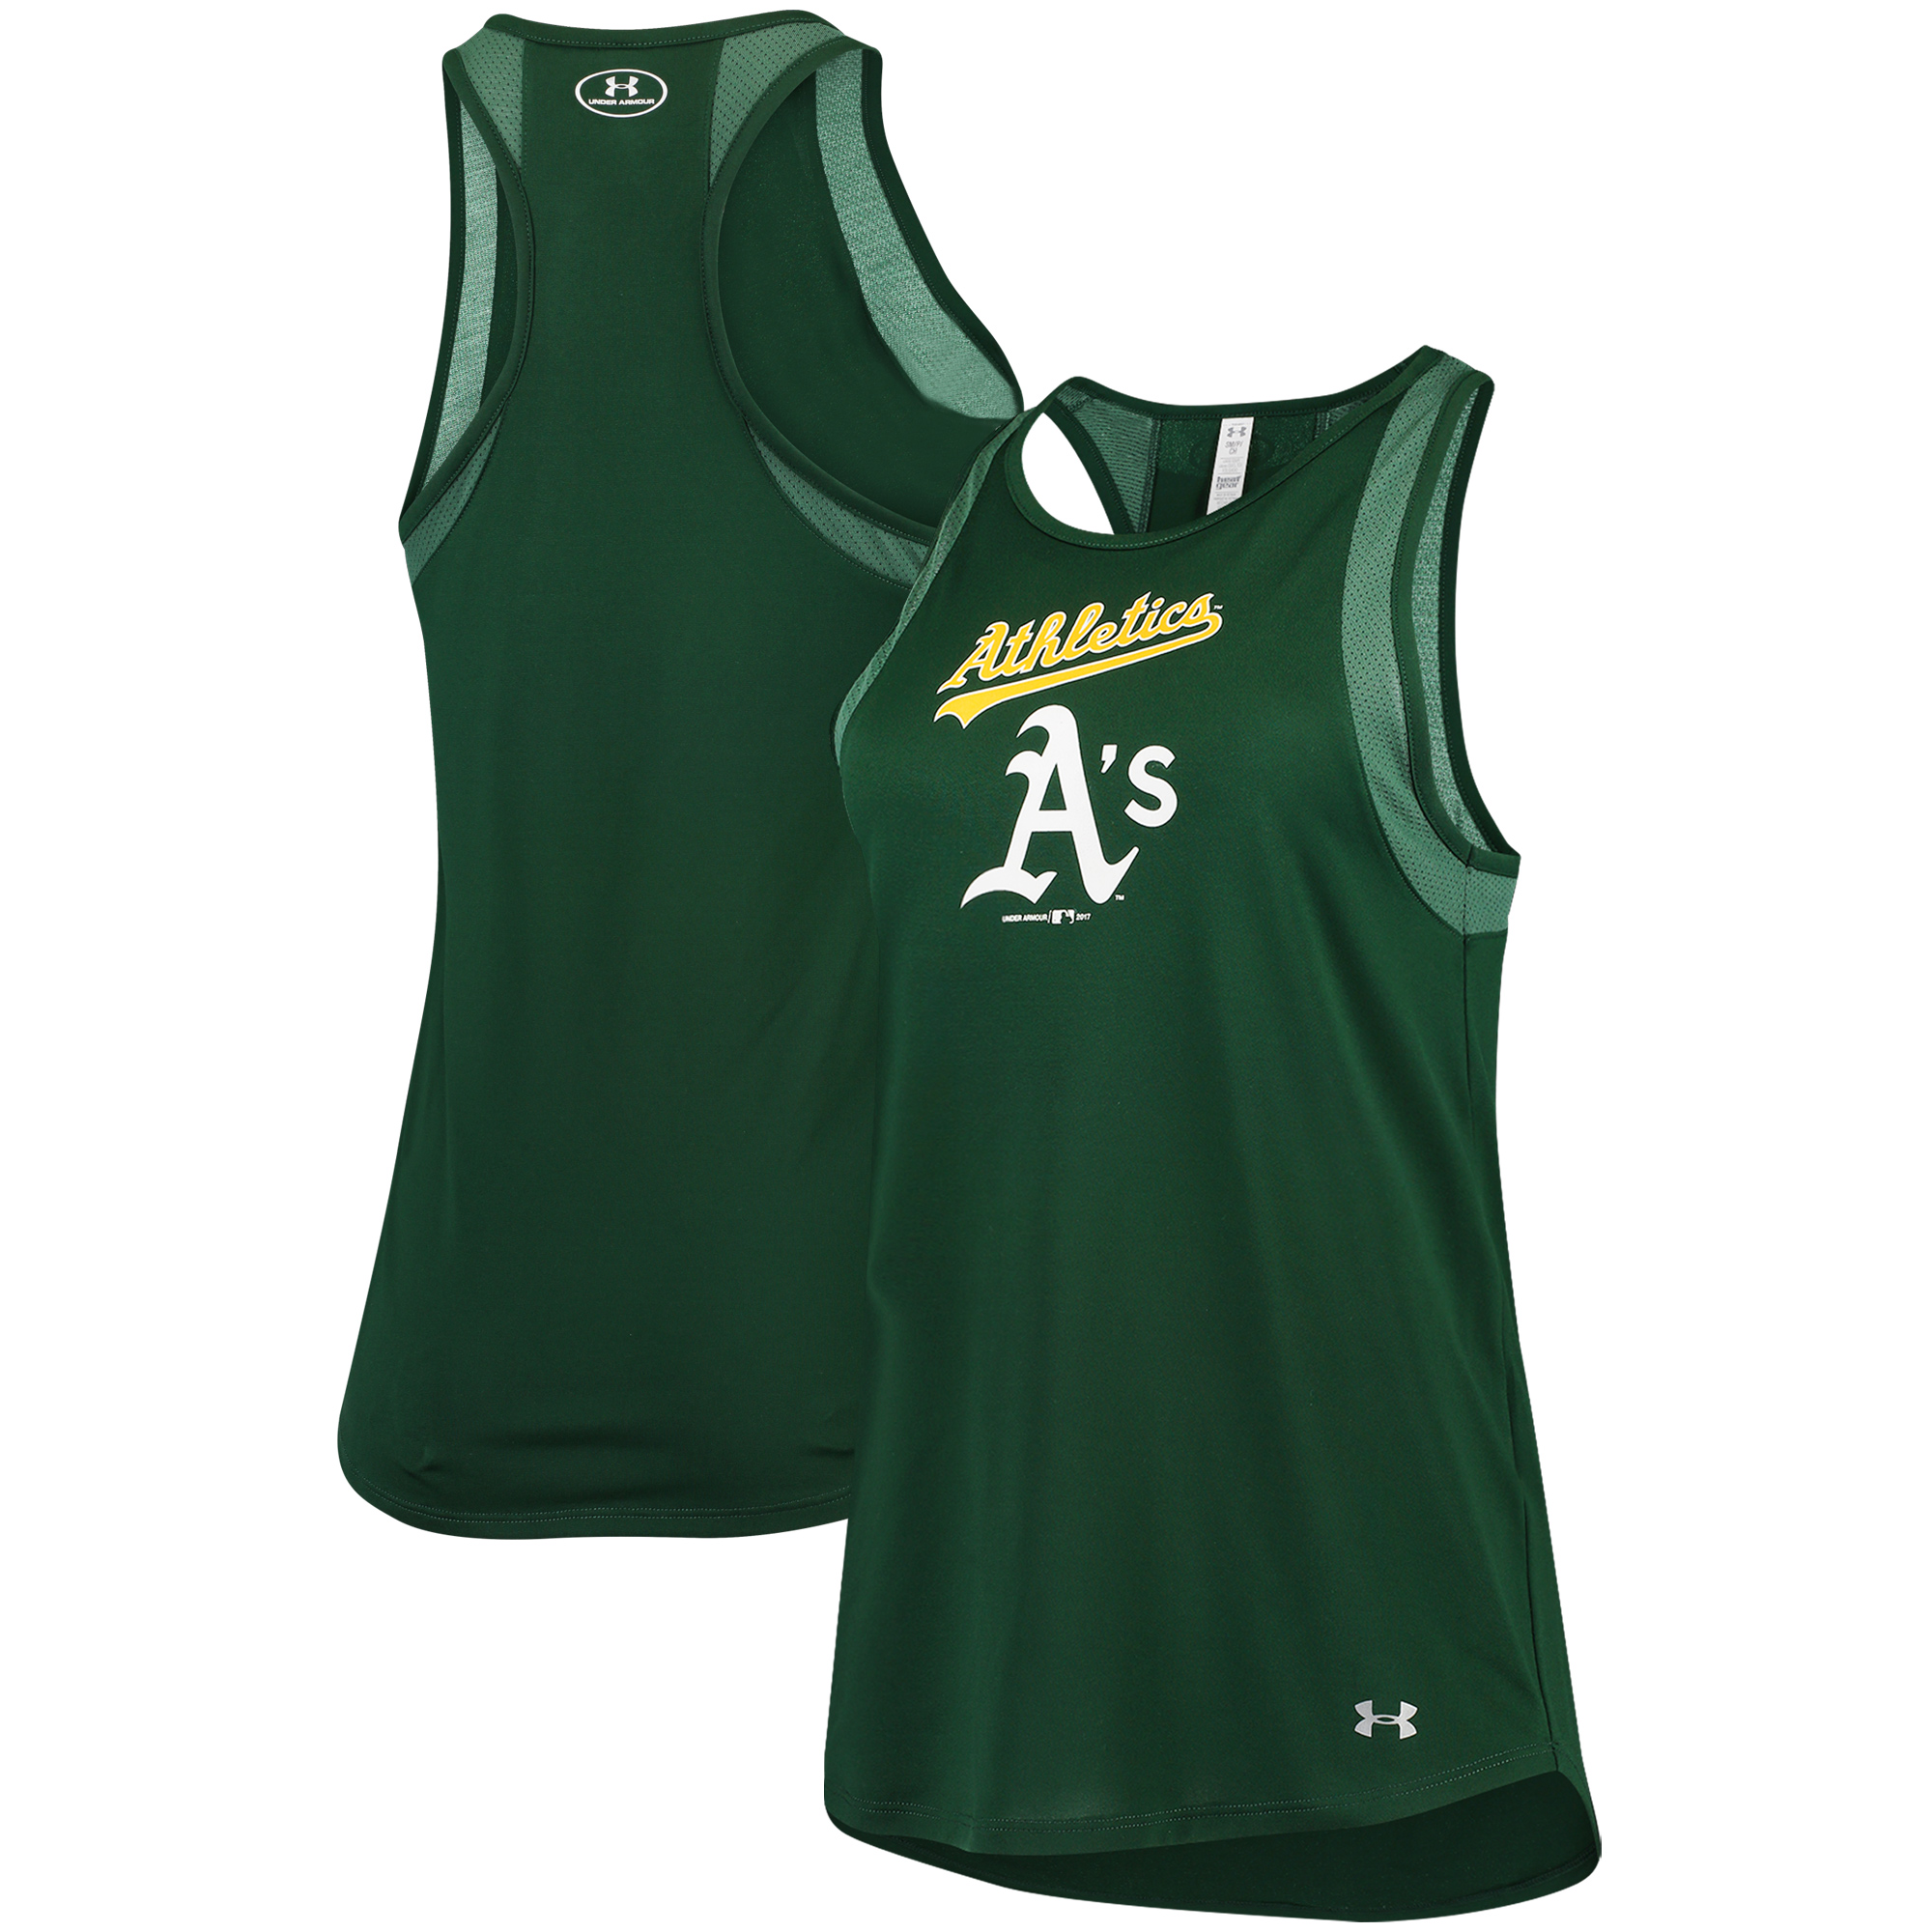 Oakland Athletics Under Armour Women's Pointelle Mesh Performance Tank Top - Green